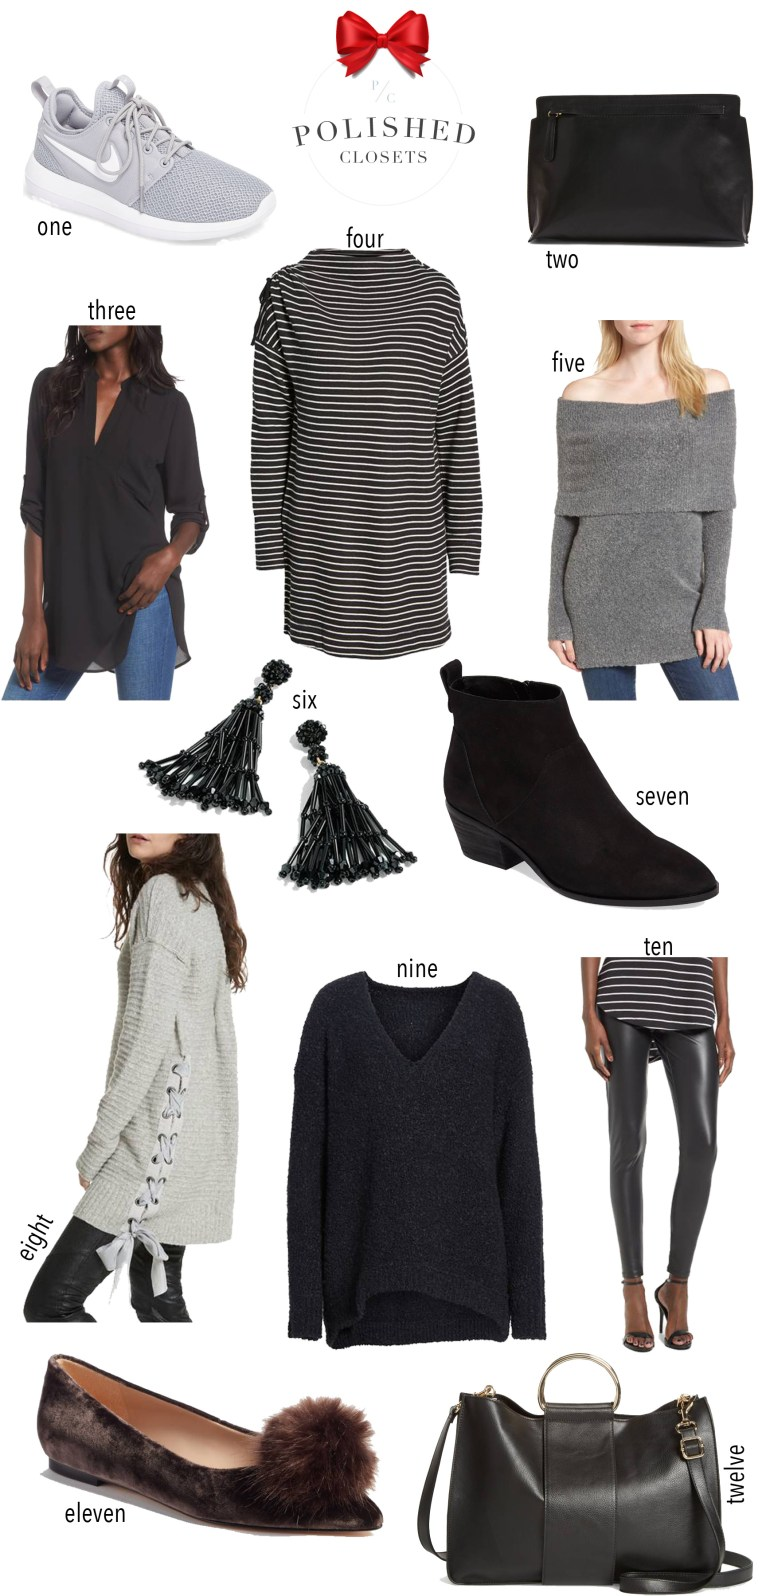 The best picks under $100 from the Nordstrom Black Friday Sale by fashion blogger Maggie Kern of Polished Closets.